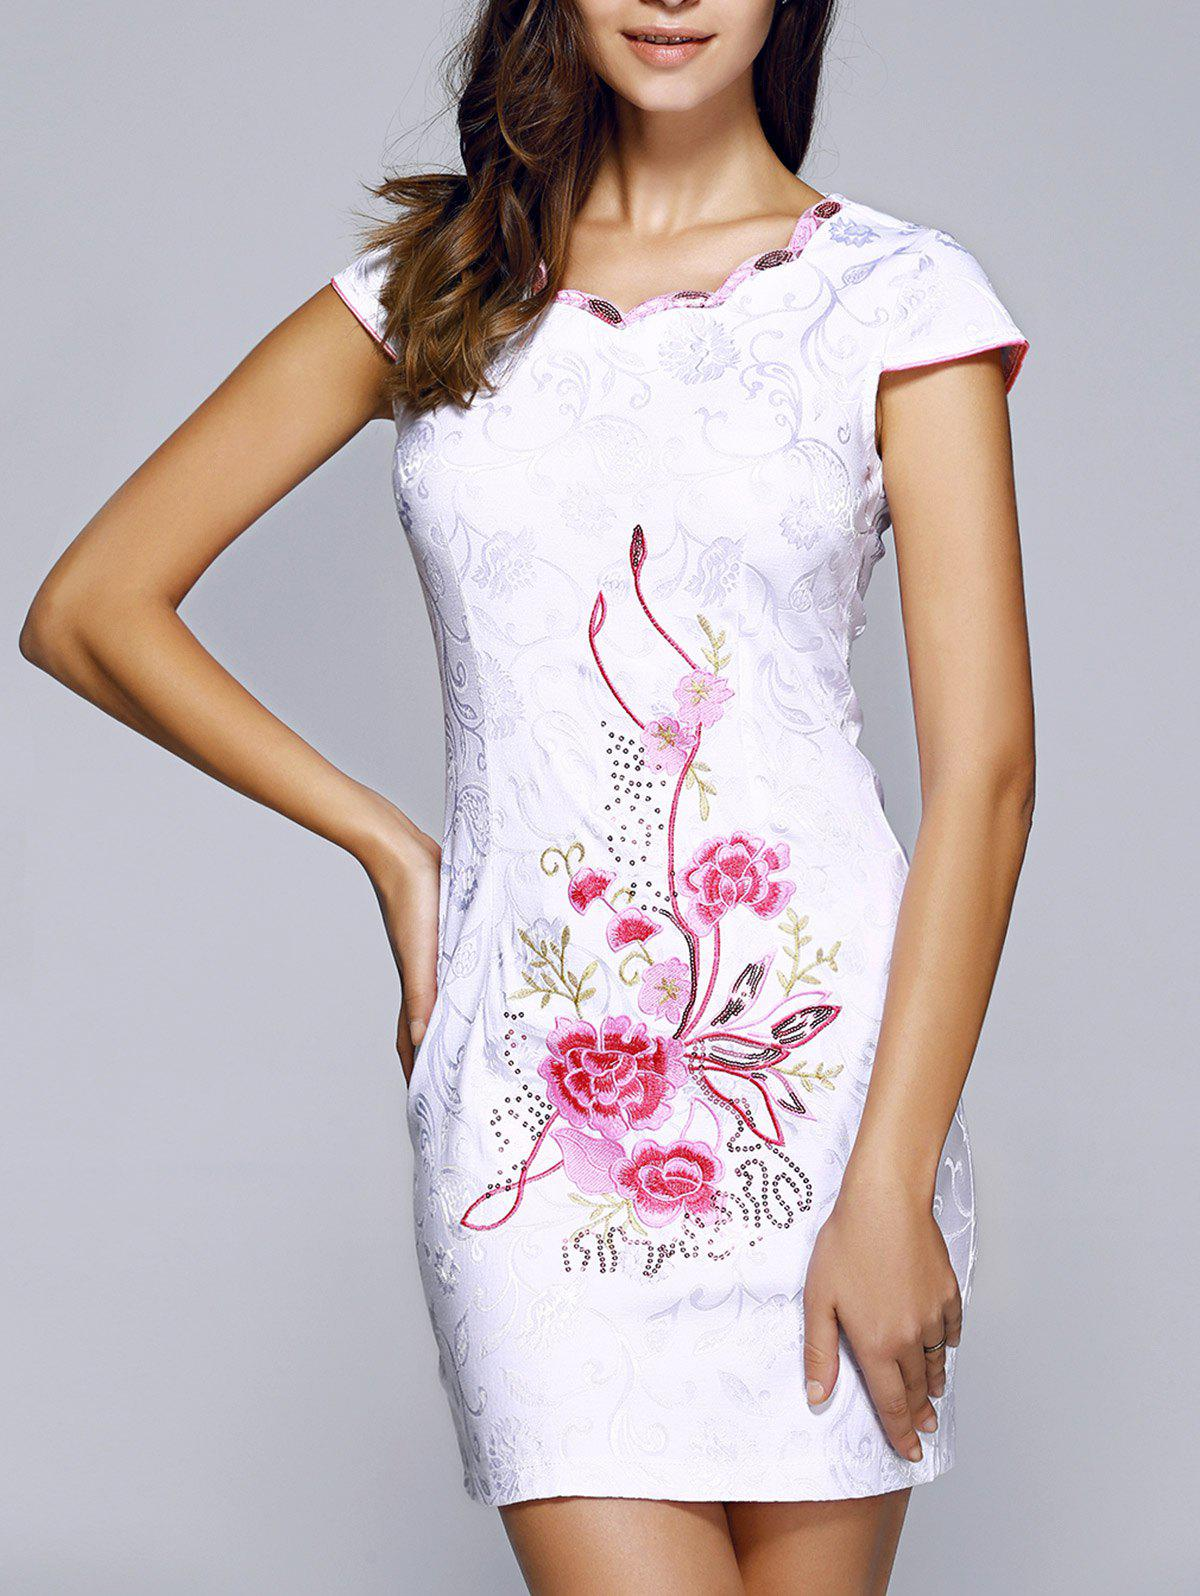 Retro Wavy Cut Jacquard Embroidered Dress For Women